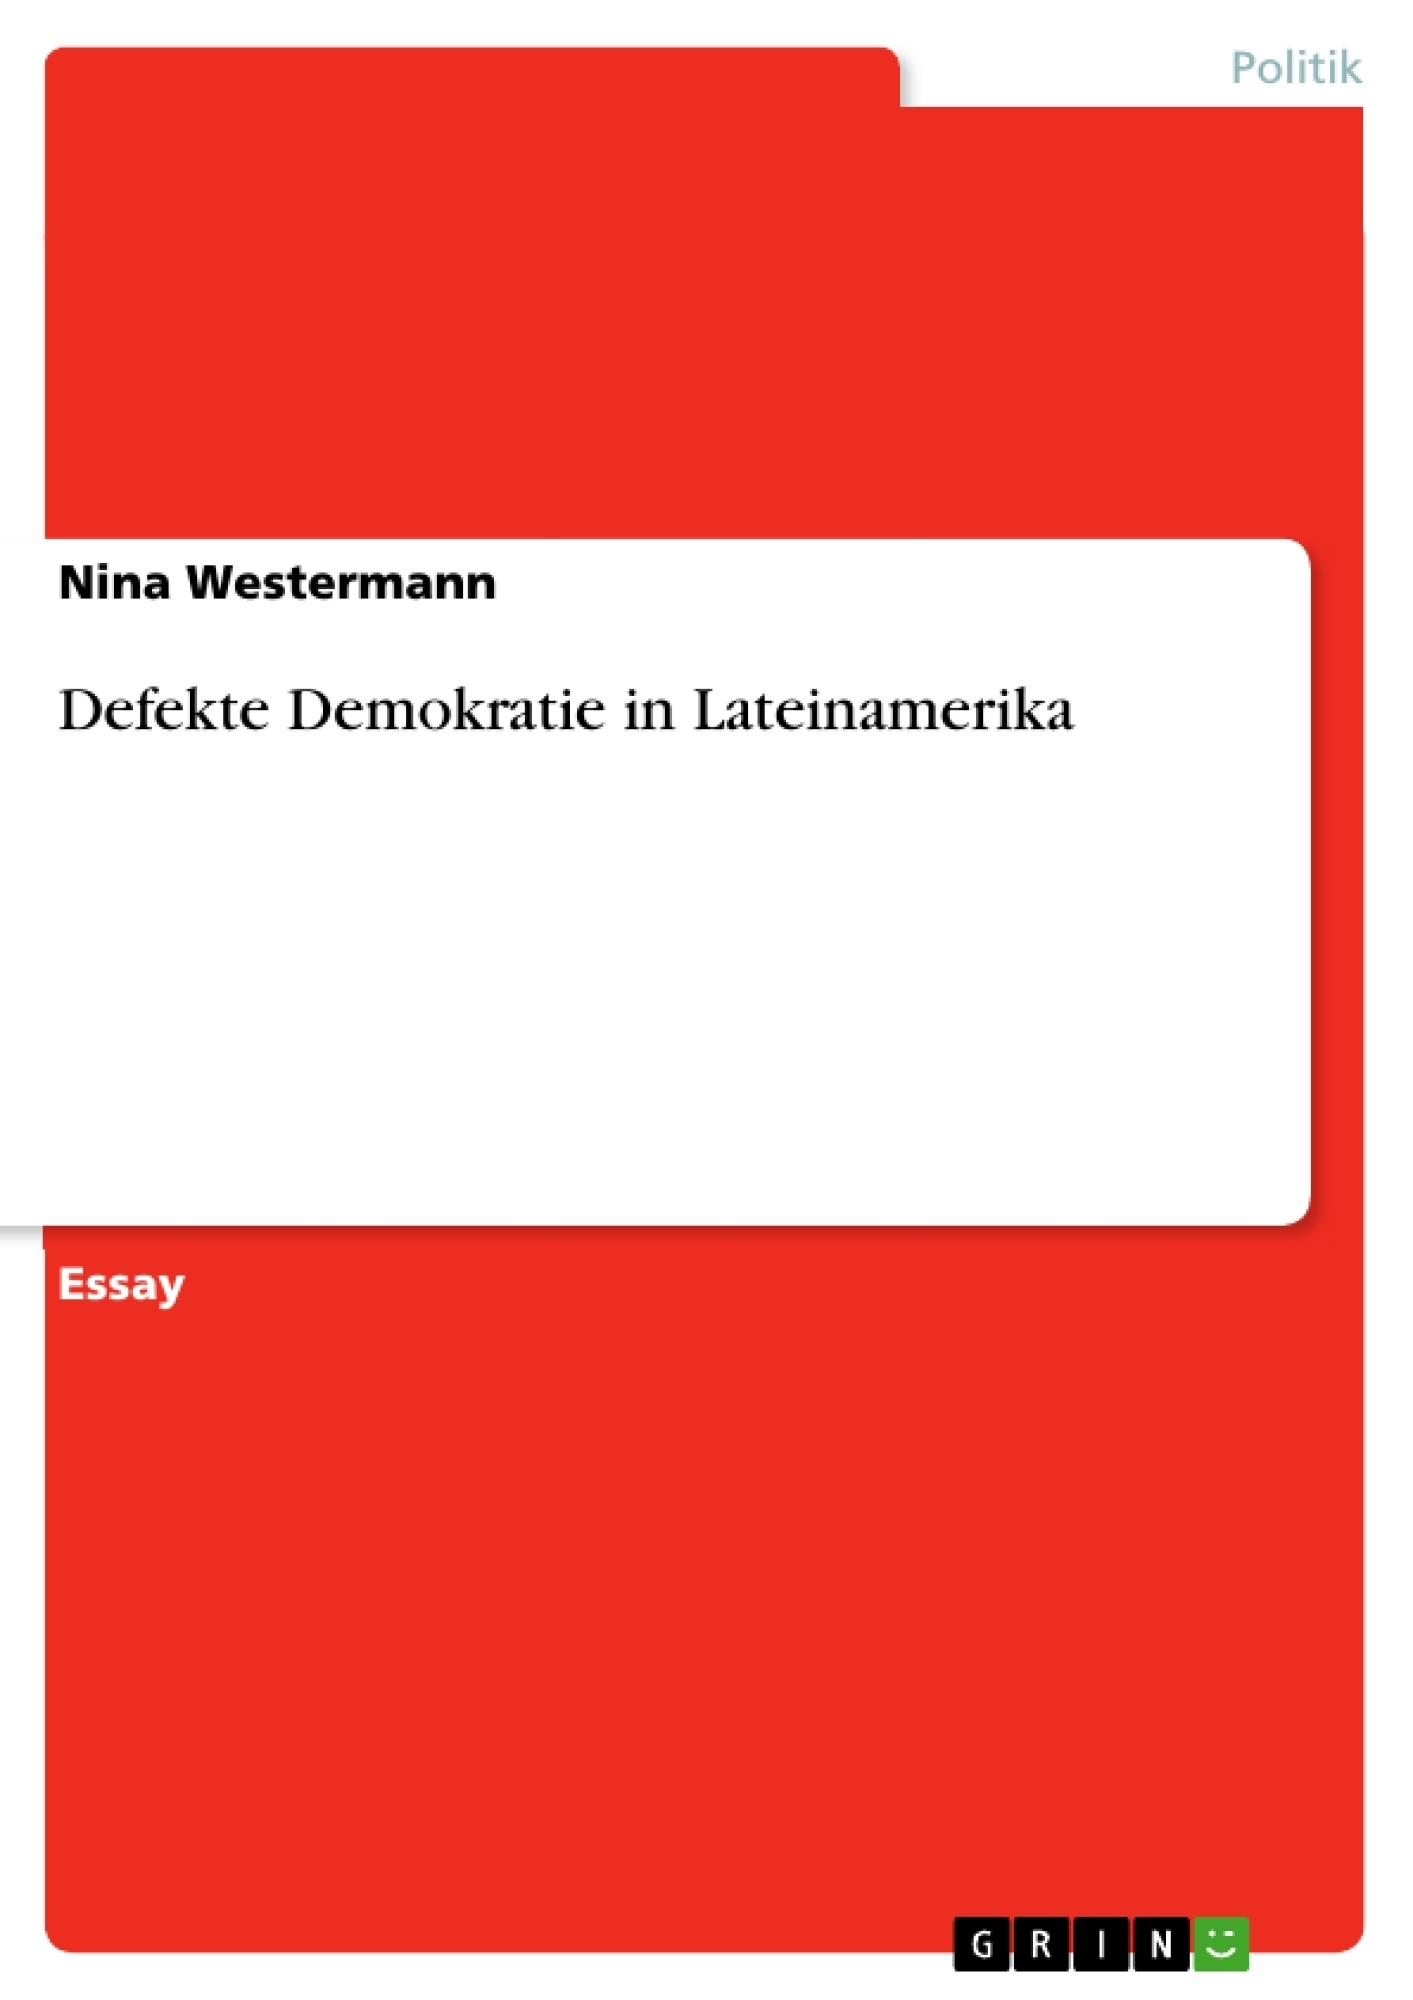 Titel: Defekte Demokratie in Lateinamerika